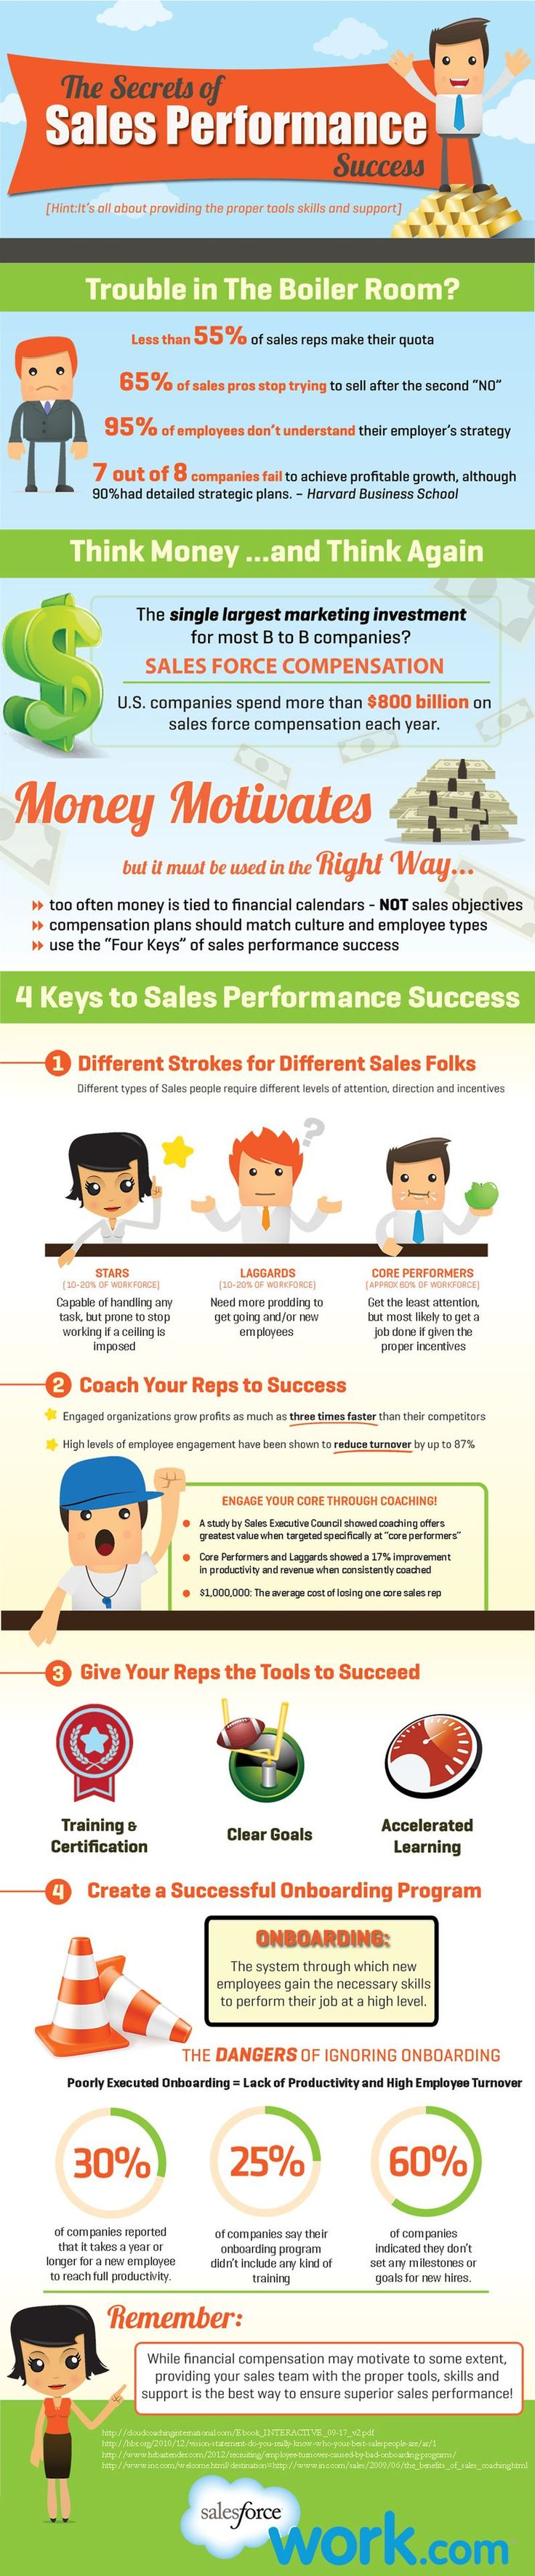 #INFOgraphic > Sales Performance Tips: 4 key tips for sales managers who need to enhance their coaching and oil the engine through effective motivation of the sales team.  > http://infographicsmania.com/sales-performance-tips/